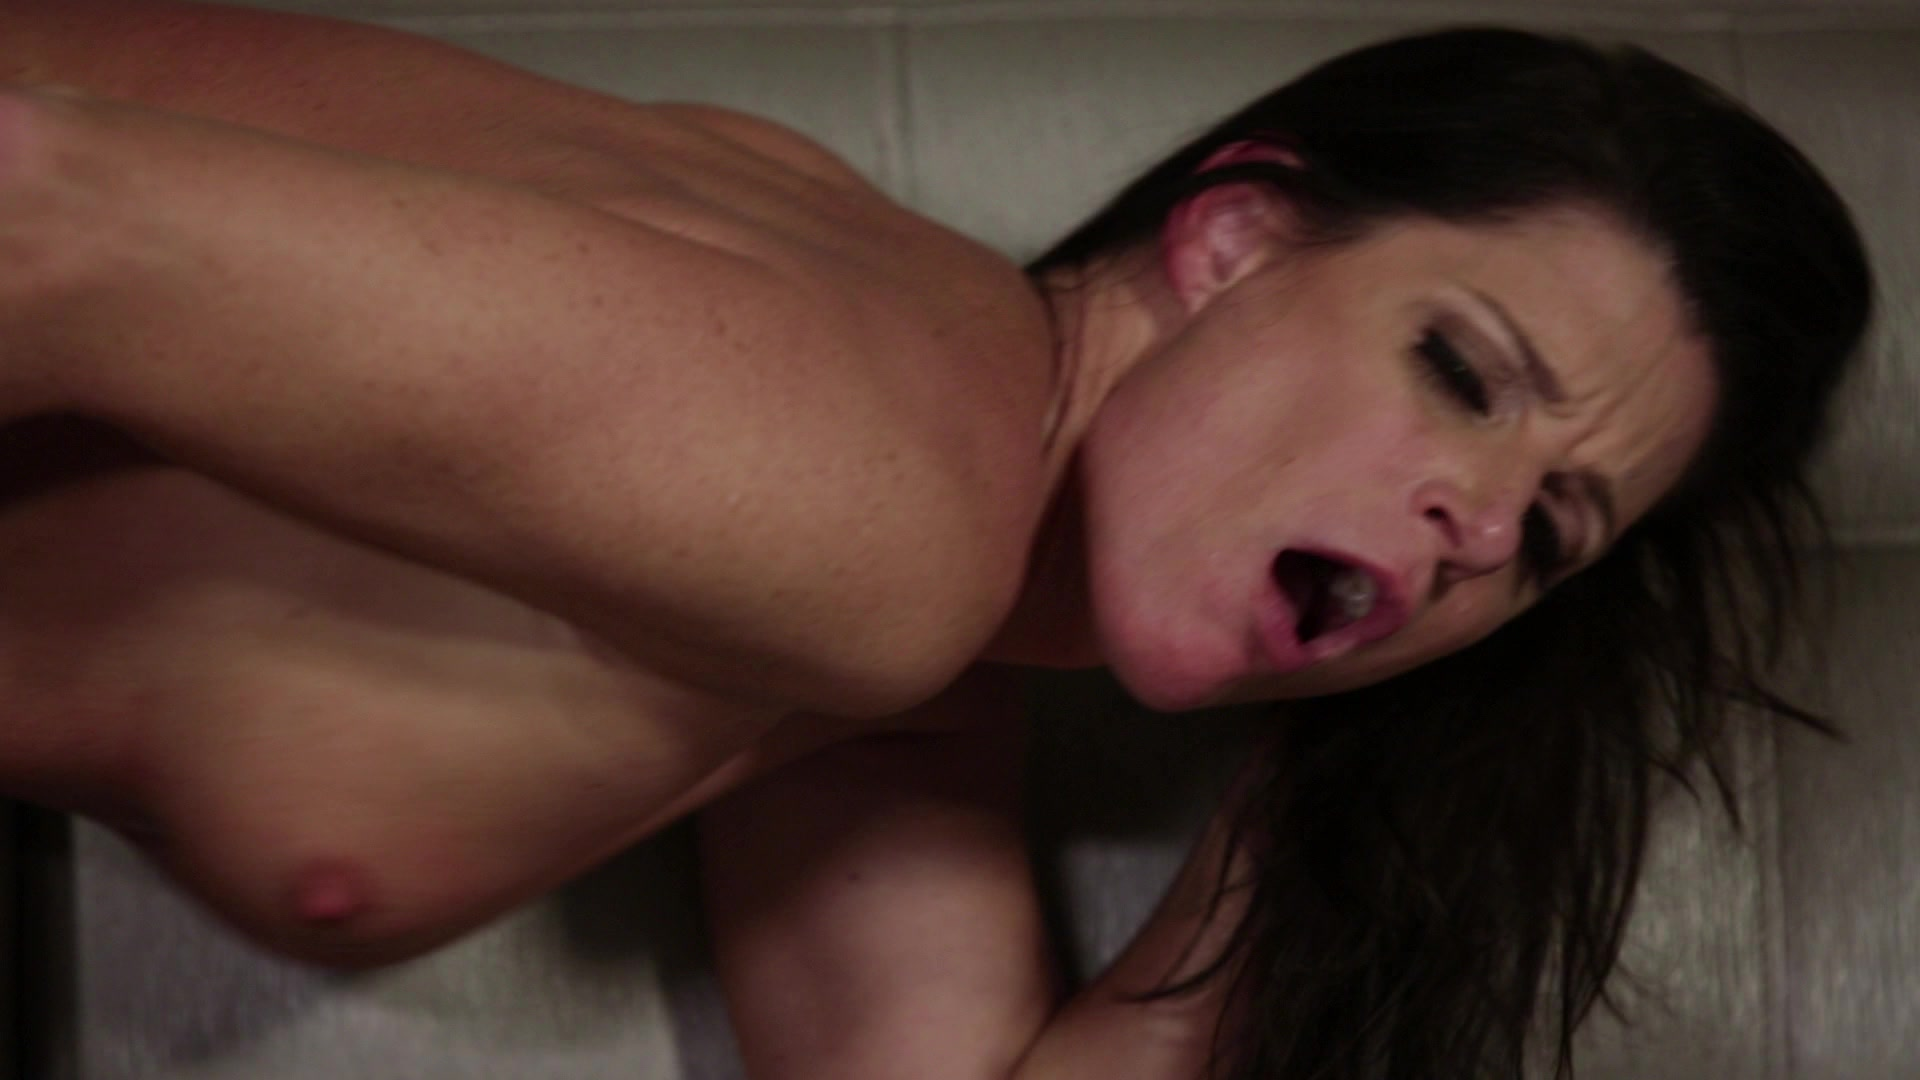 Scene with India Summer - image 16 out of 20